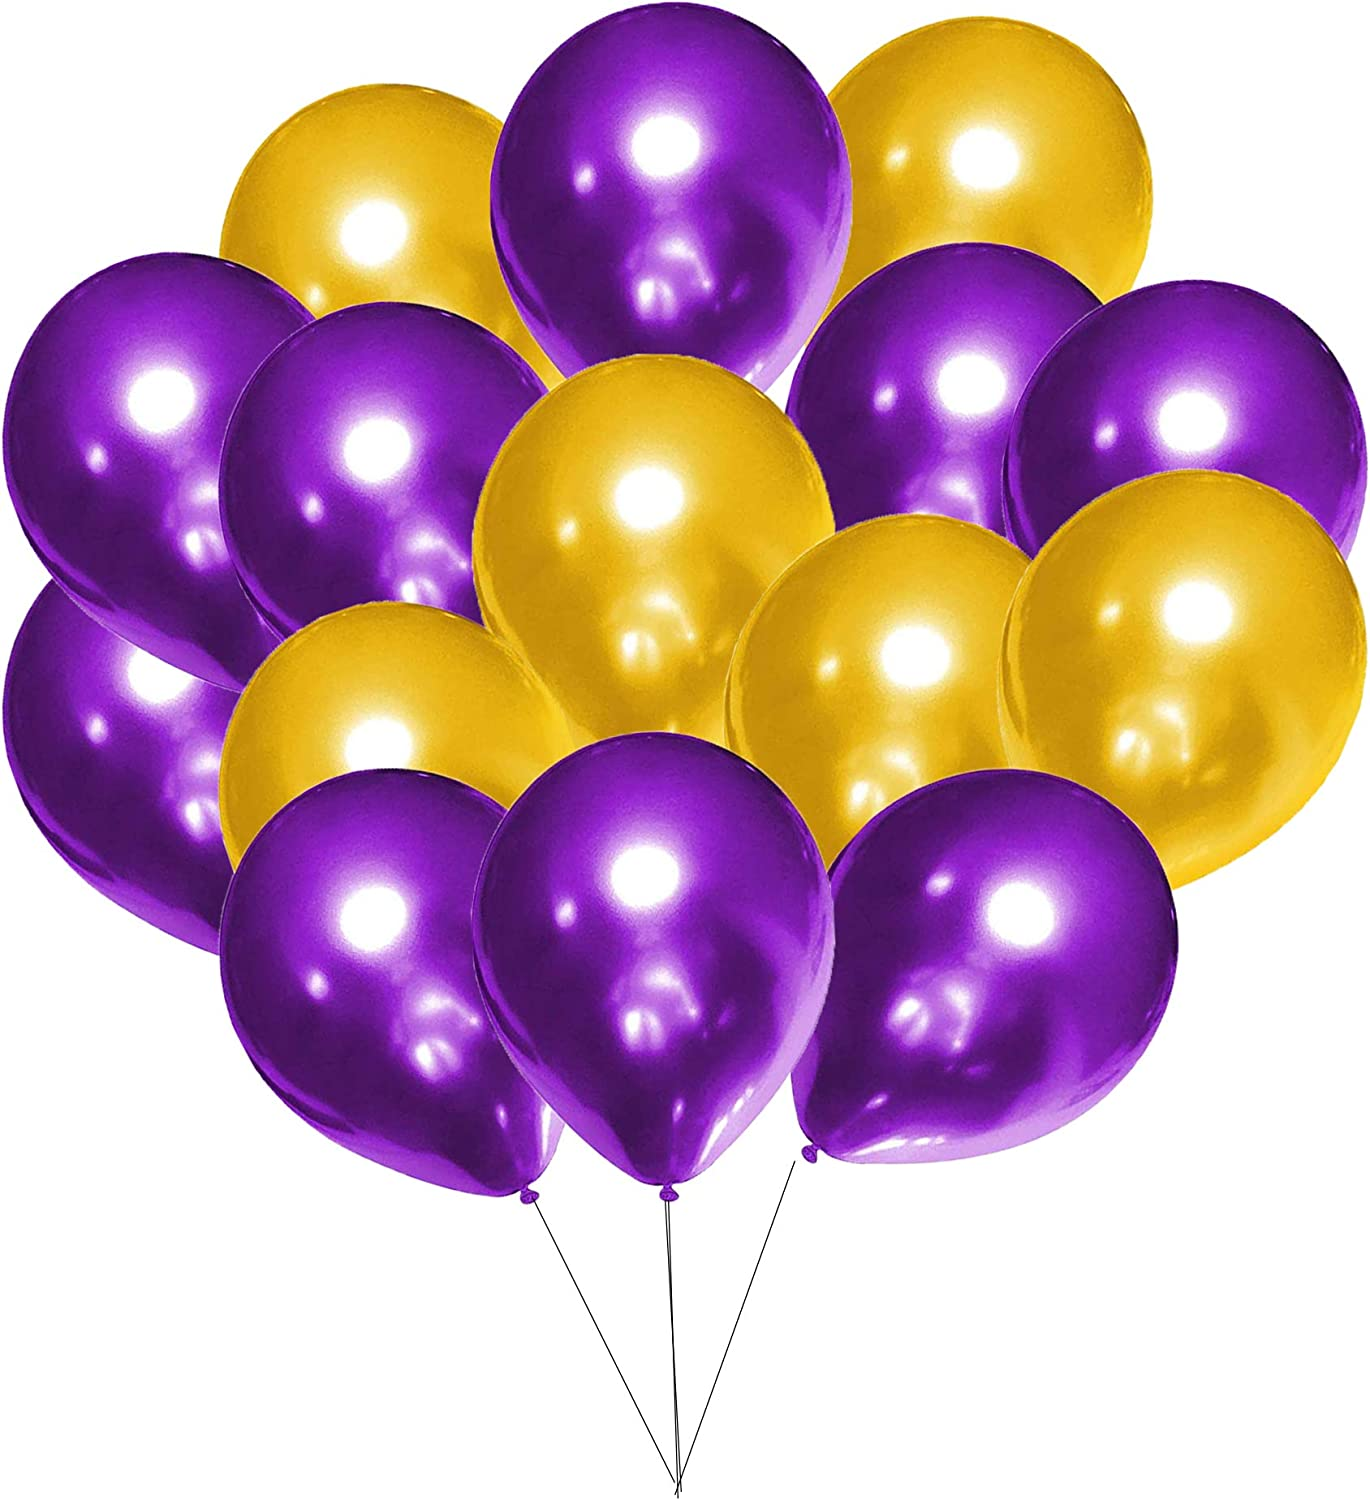 60Pcs Purple and Gold Balloons Set for 2021 Graduation Decoration Purple and Gold, Purple Gold Royal Queen Birthday Party, Purple and Gold Baby Shower Bridal Party Decorations (12 Inches)